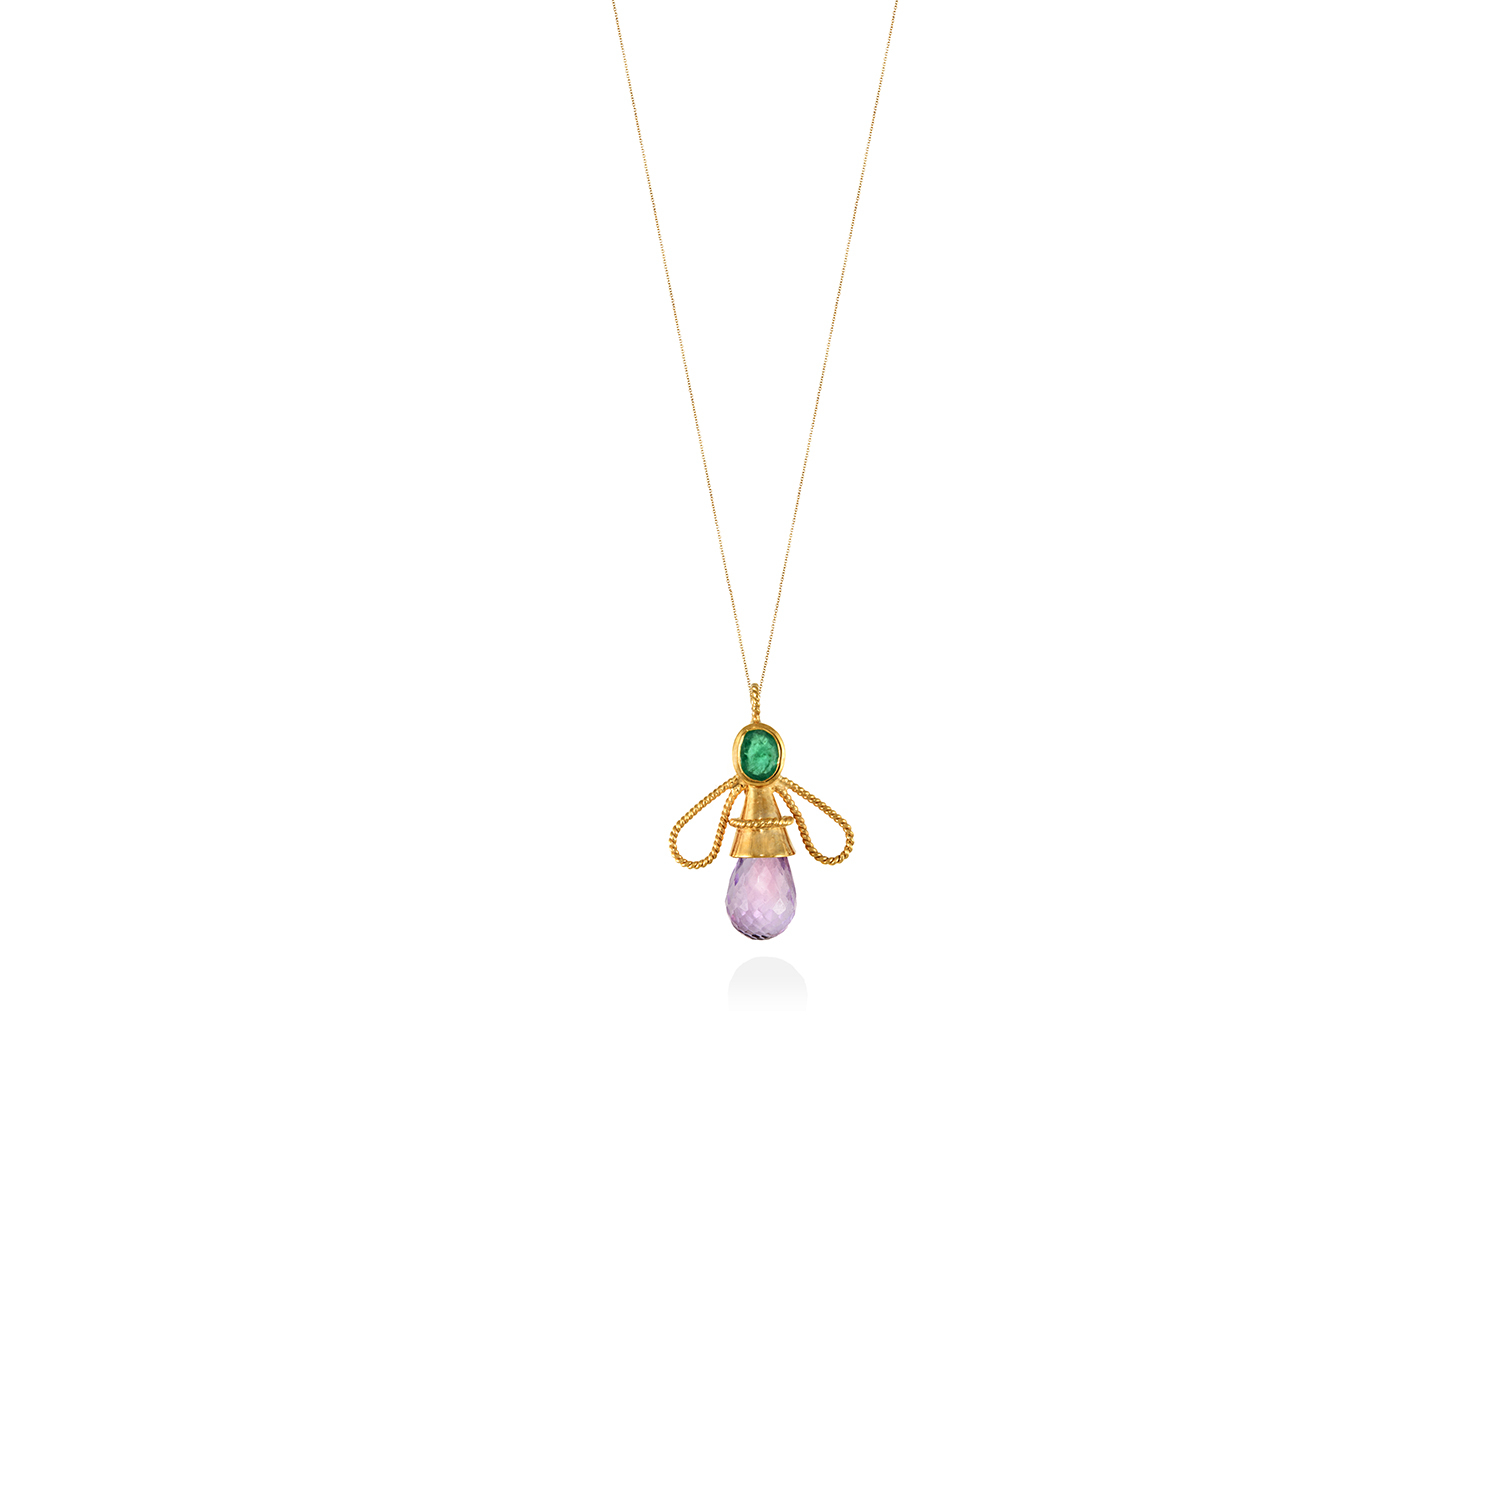 Honey Bee Pendant With Emerald And Amethyst With Regard To 2019 Bee Locket Element Necklaces (Gallery 10 of 25)